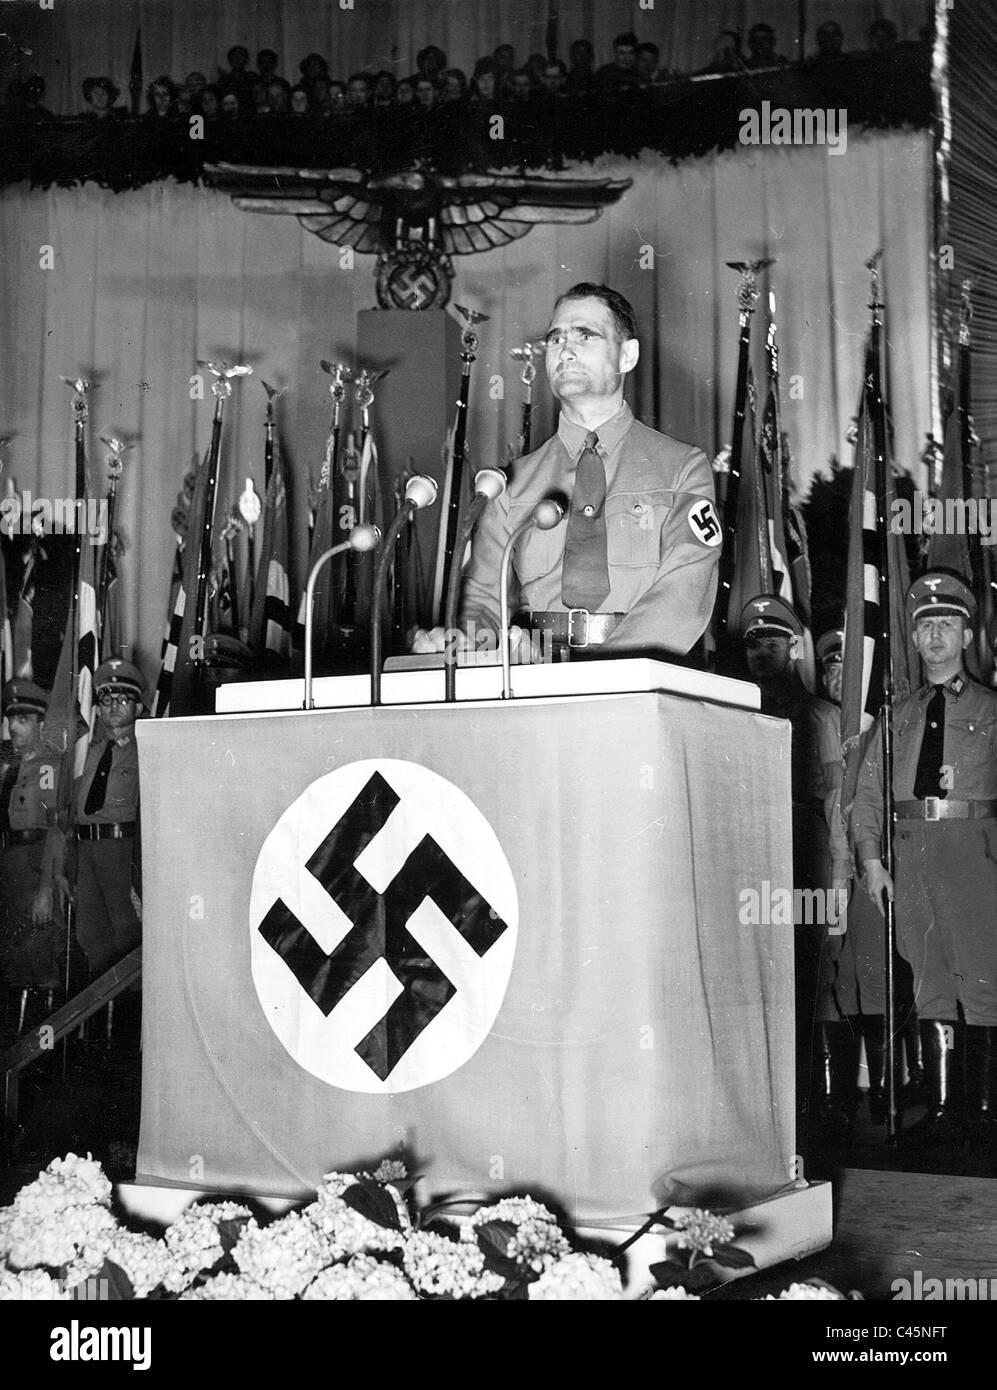 Rudolf Hess at the swearing in of the political leaders in the Berlin Sports Palace, 1939 - Stock Image